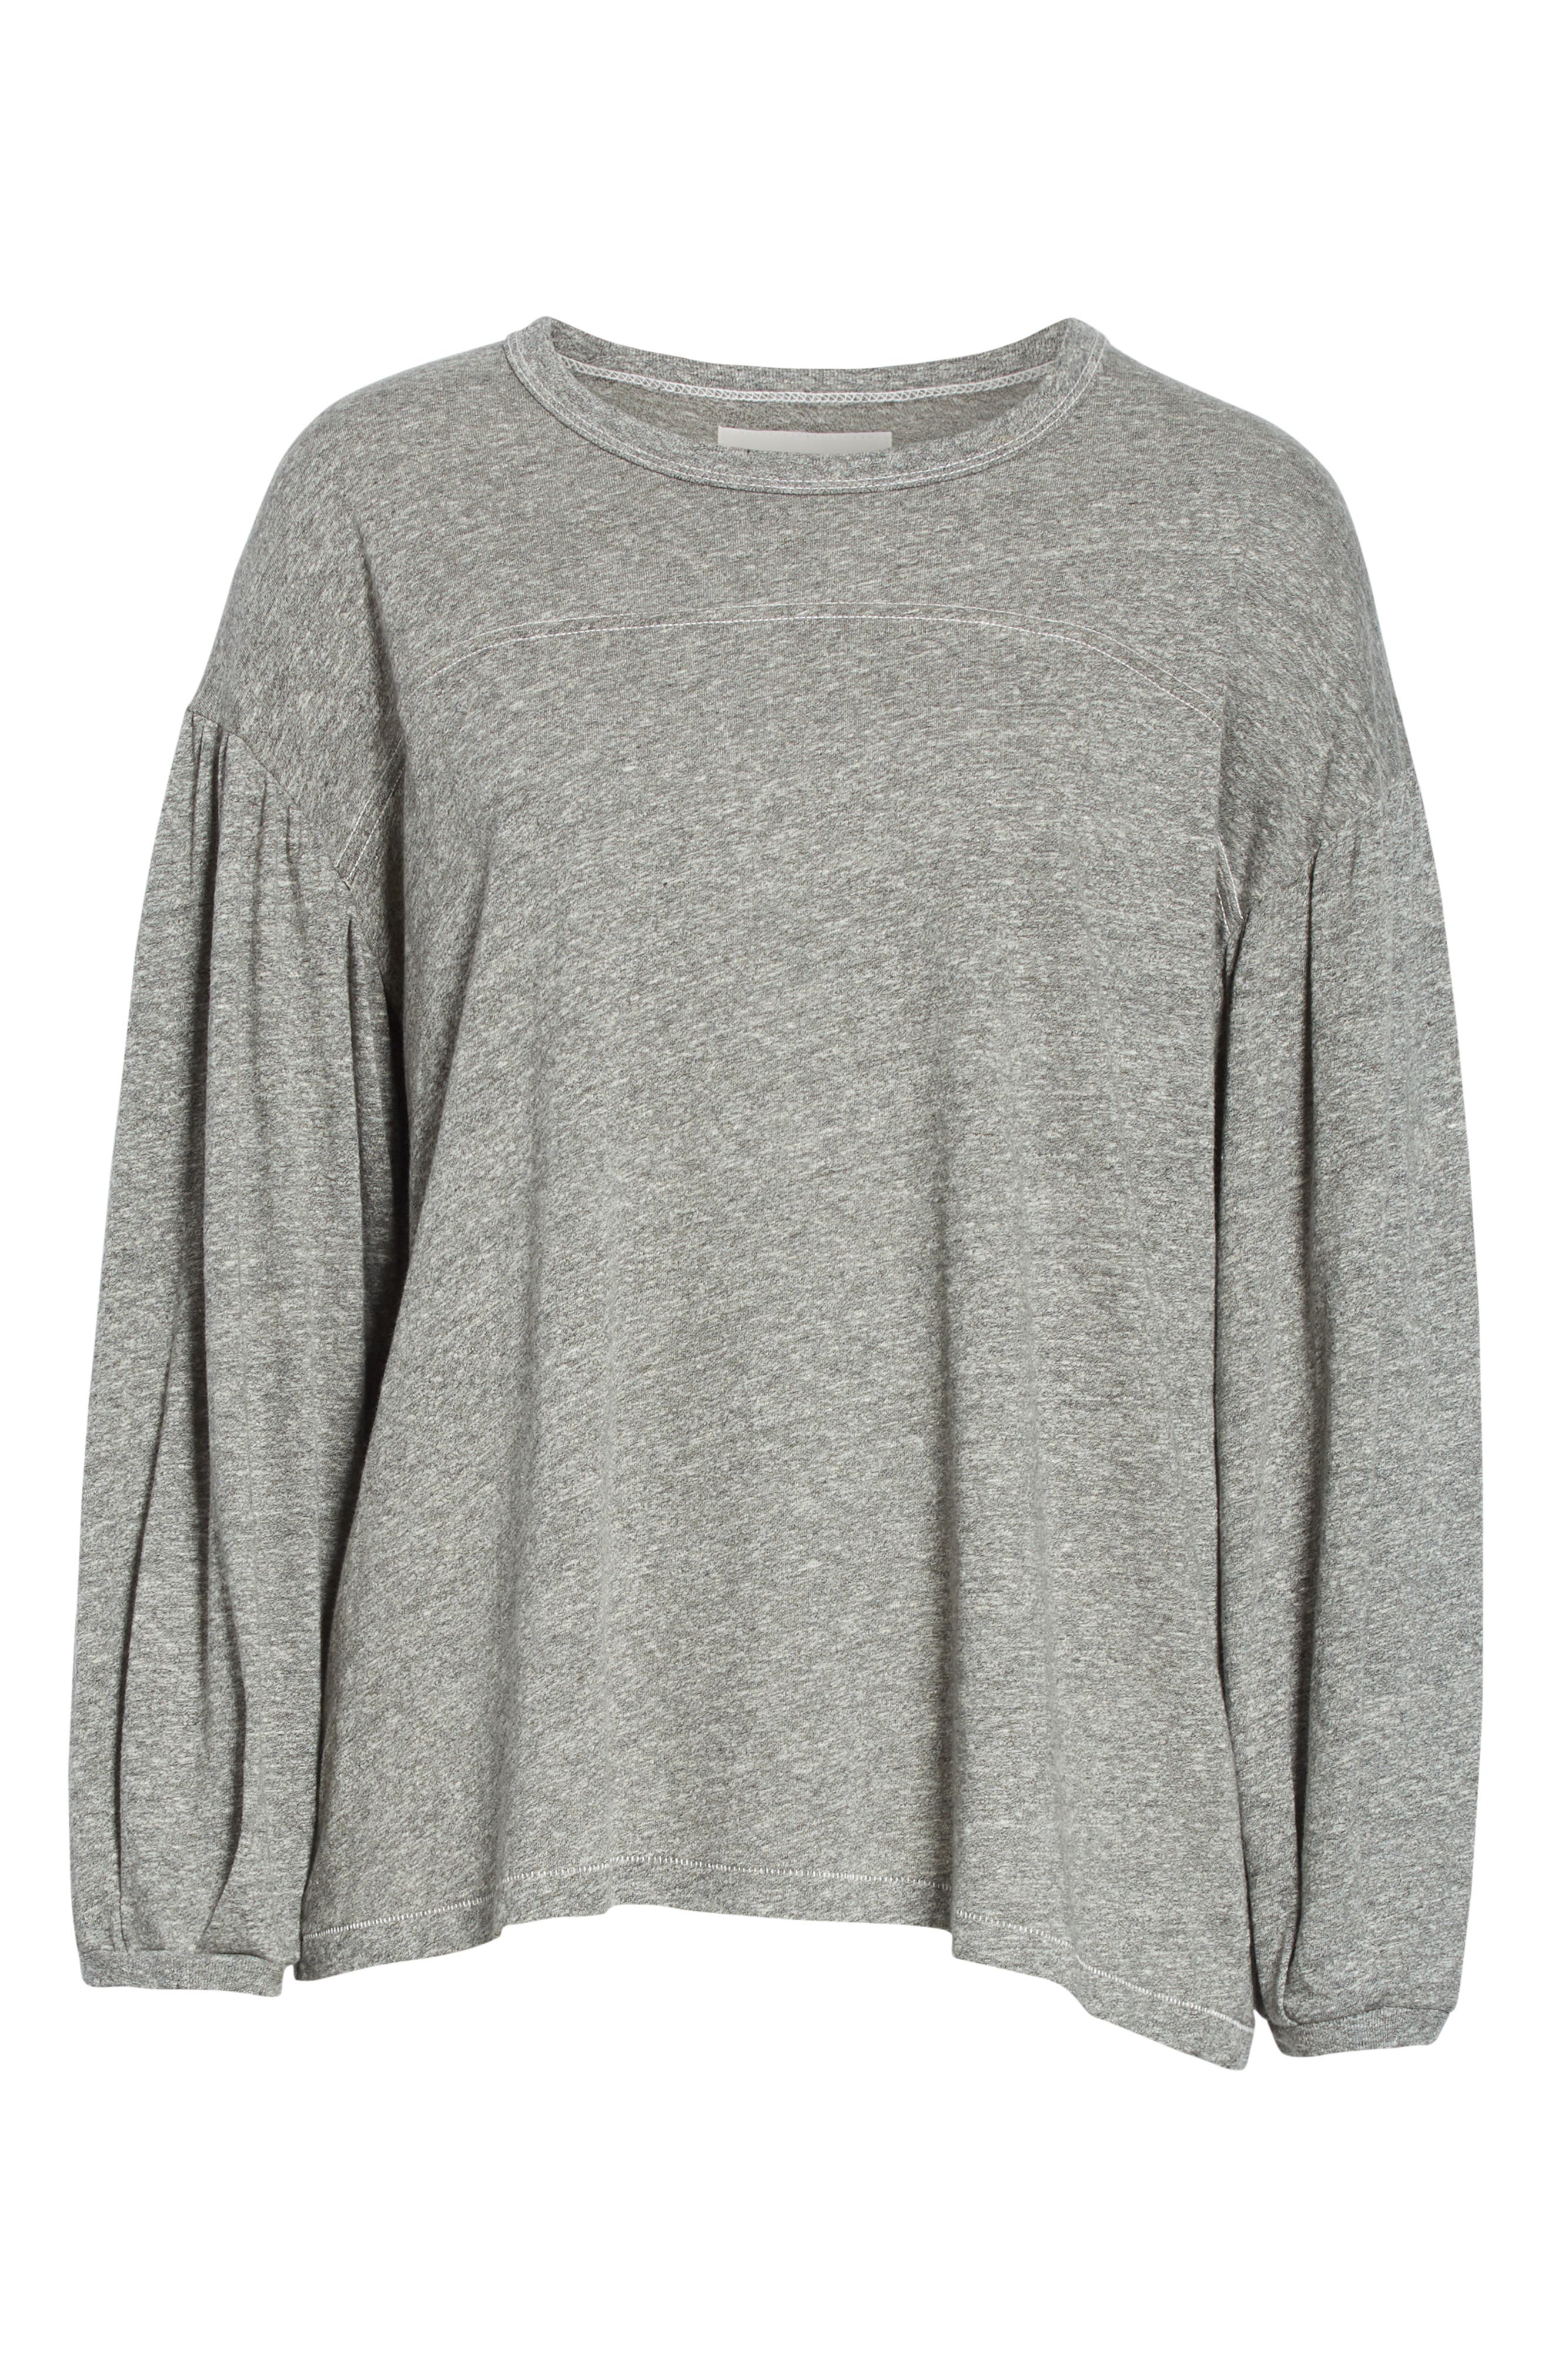 The Curve Tee,                             Alternate thumbnail 6, color,                             HEATHER GREY